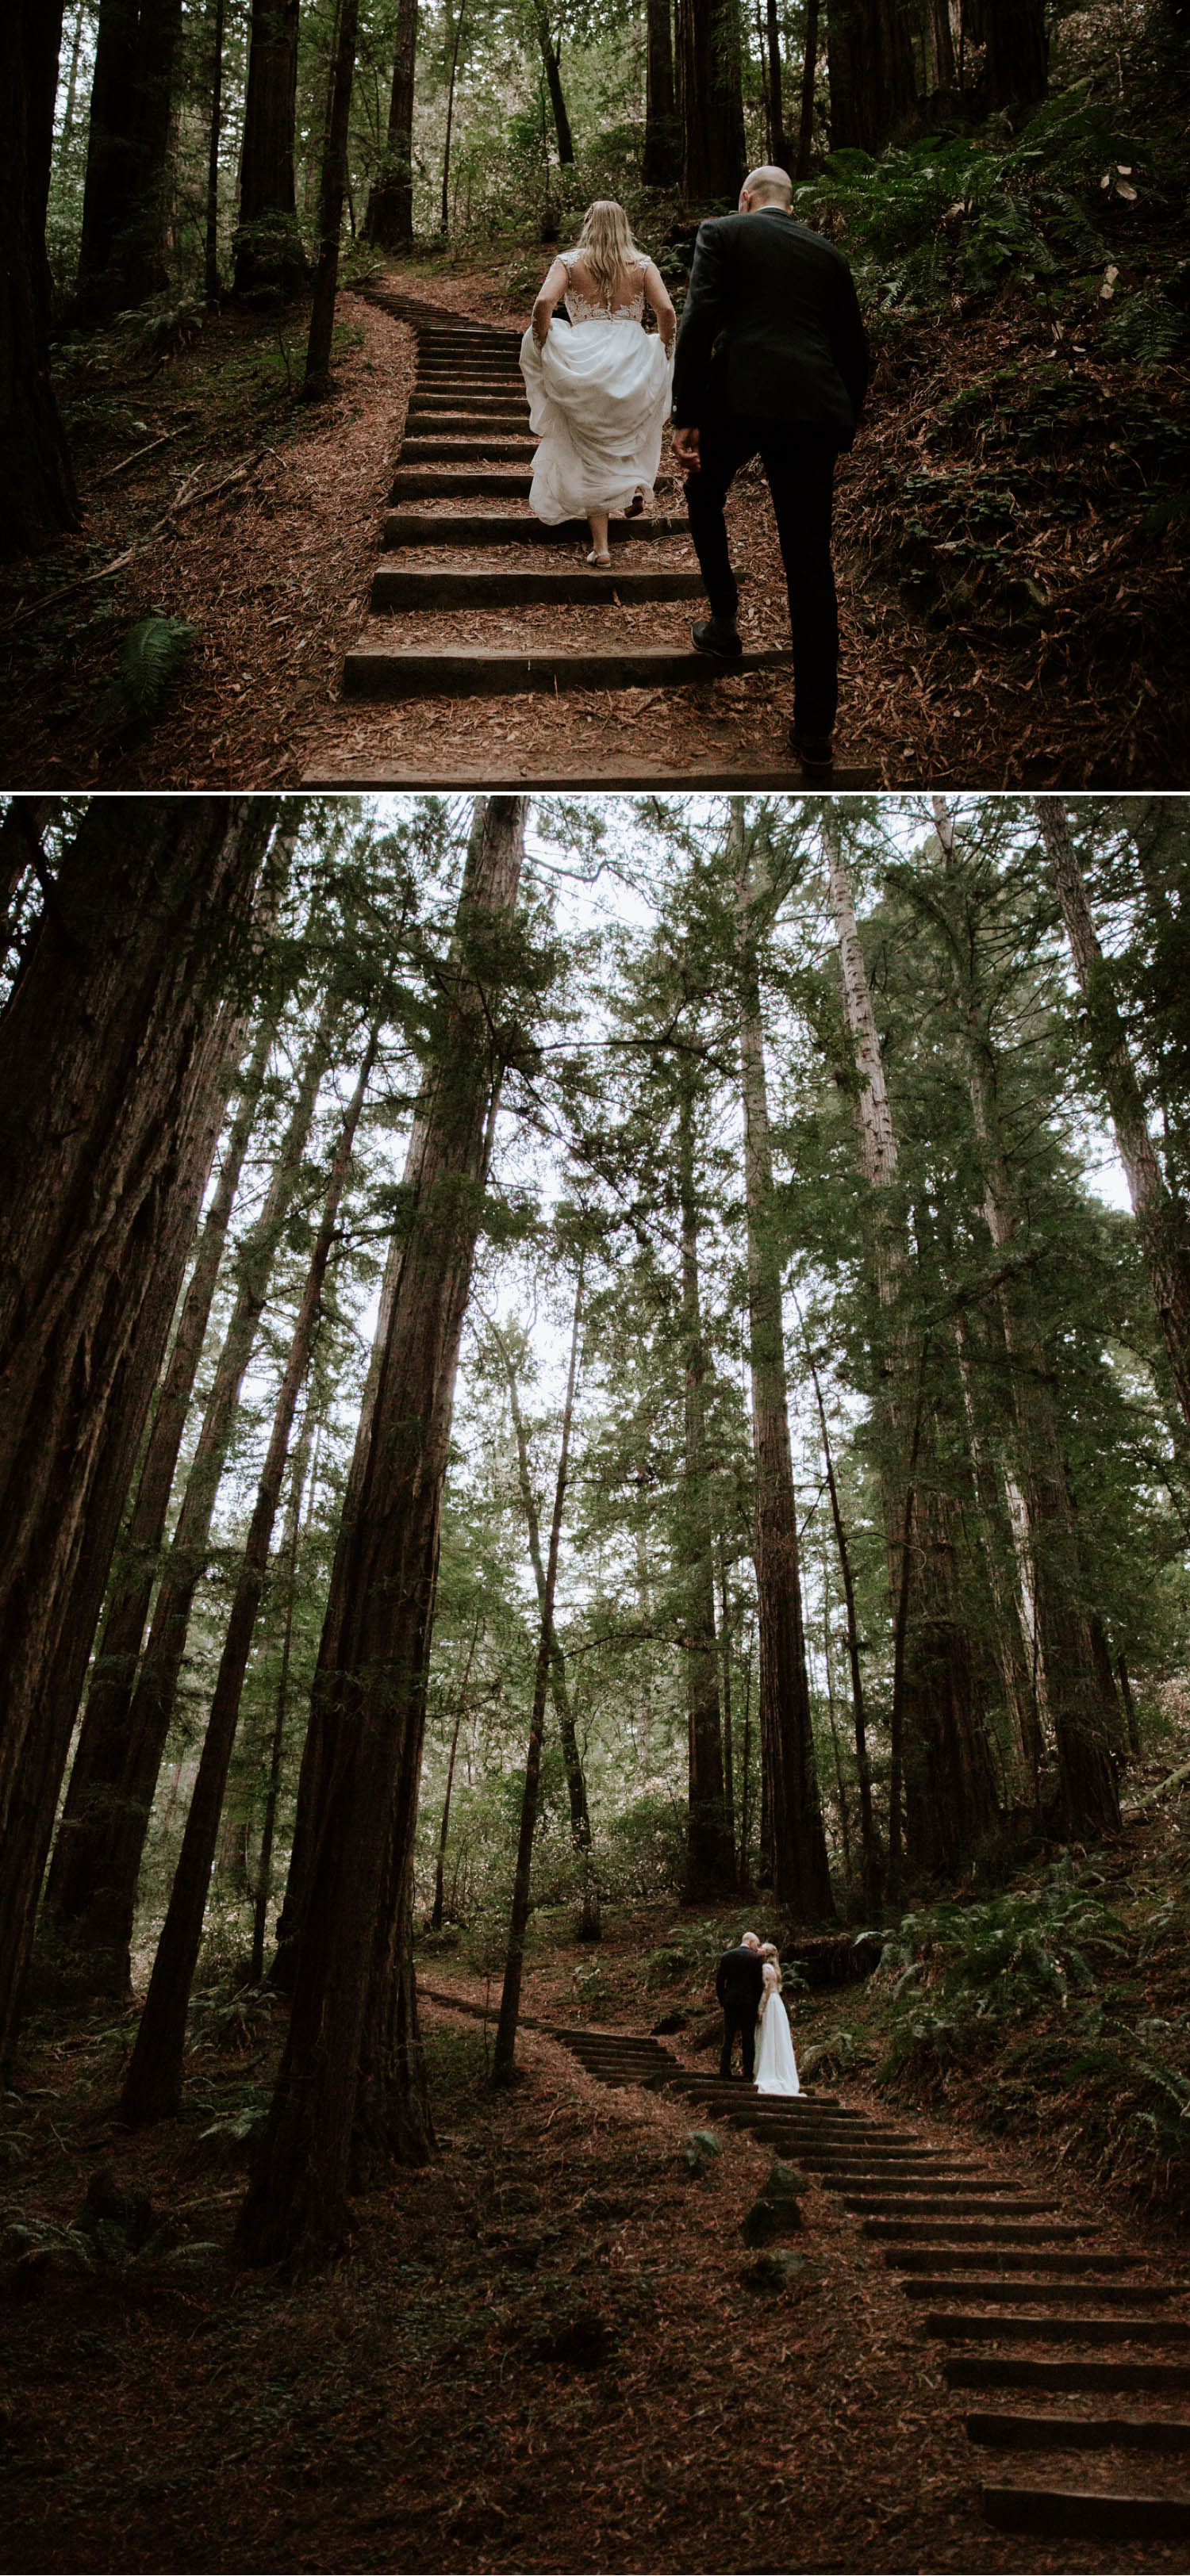 Redwood elopement at Muir woods National Monument